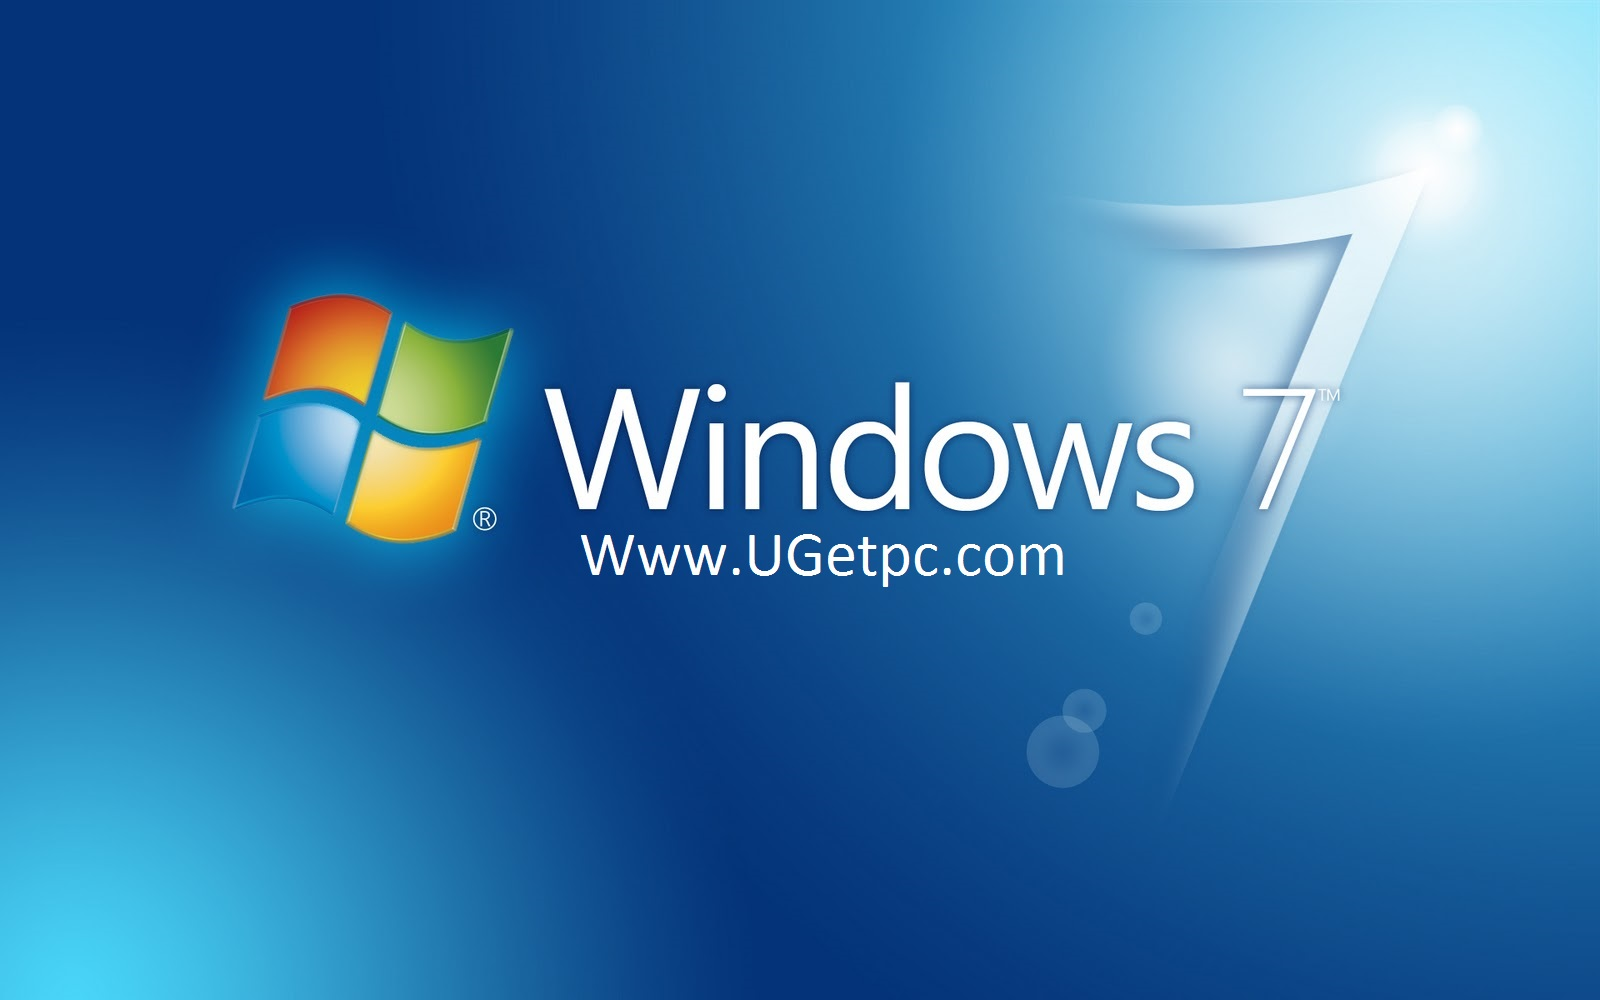 windows 7 full version download with key